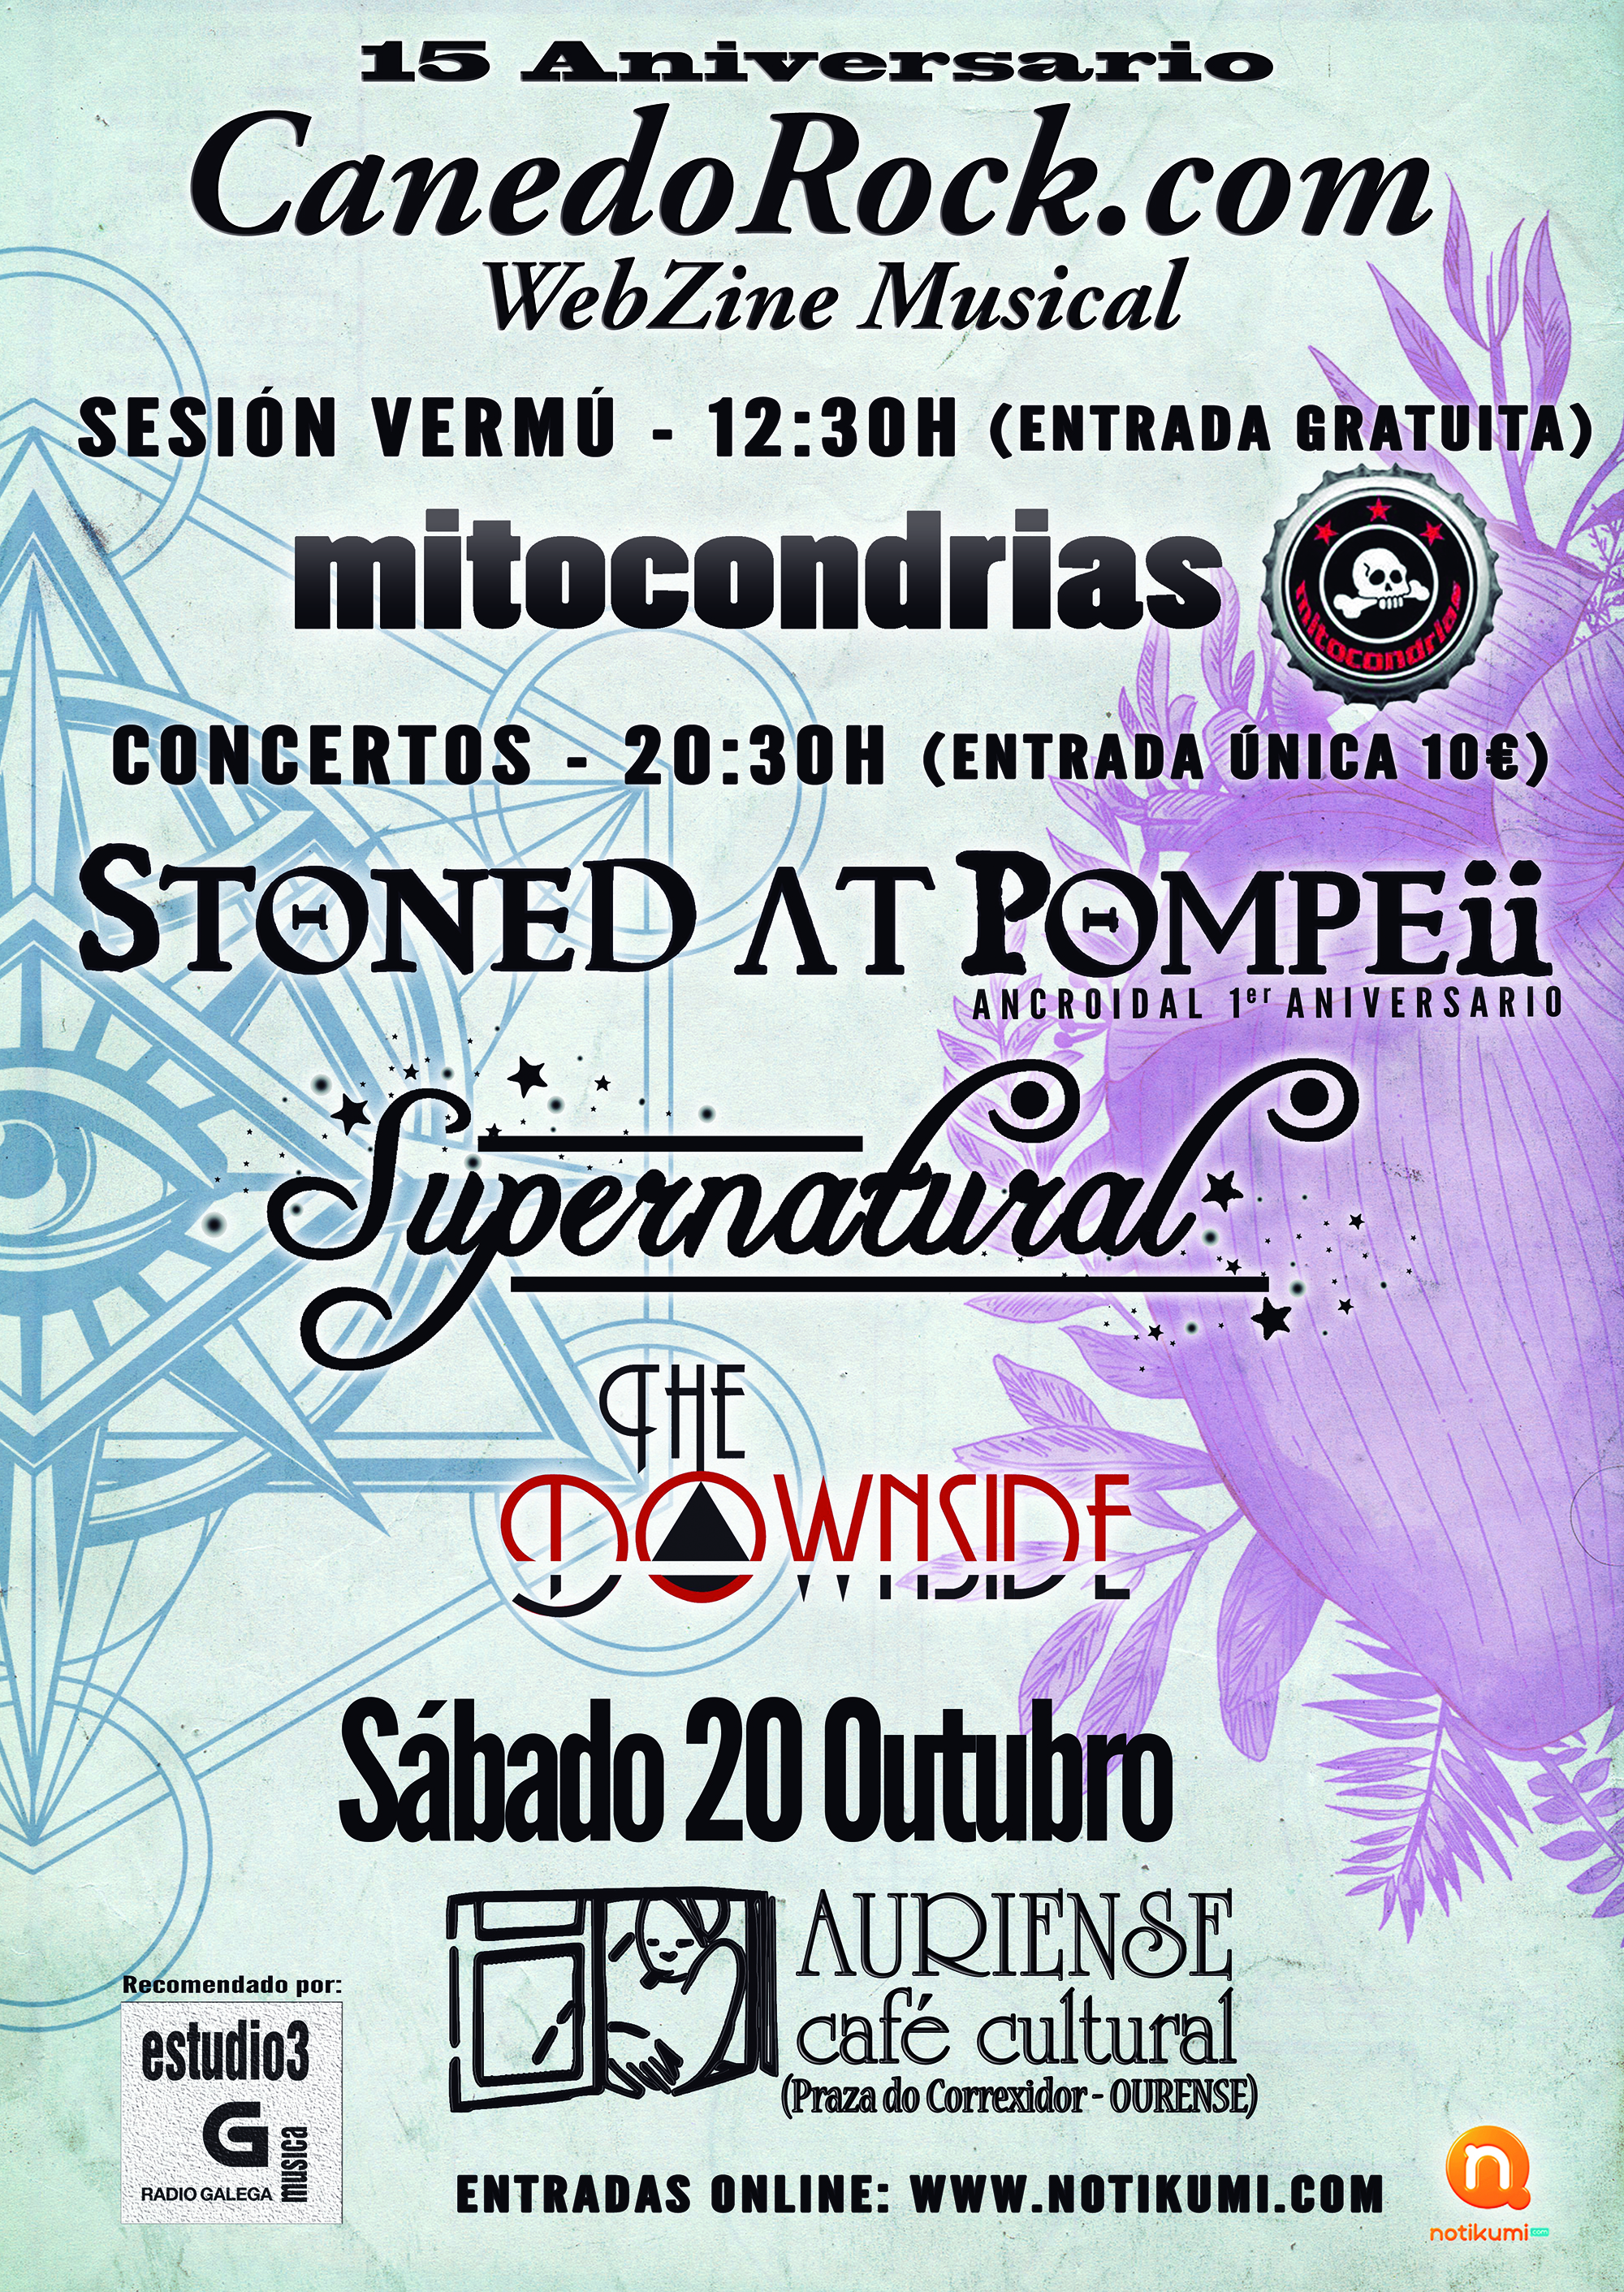 Fiesta 15 aniversario CanedoRock con Stoned At Pompeii, Supernatural, Mitocondrias y The Downside.